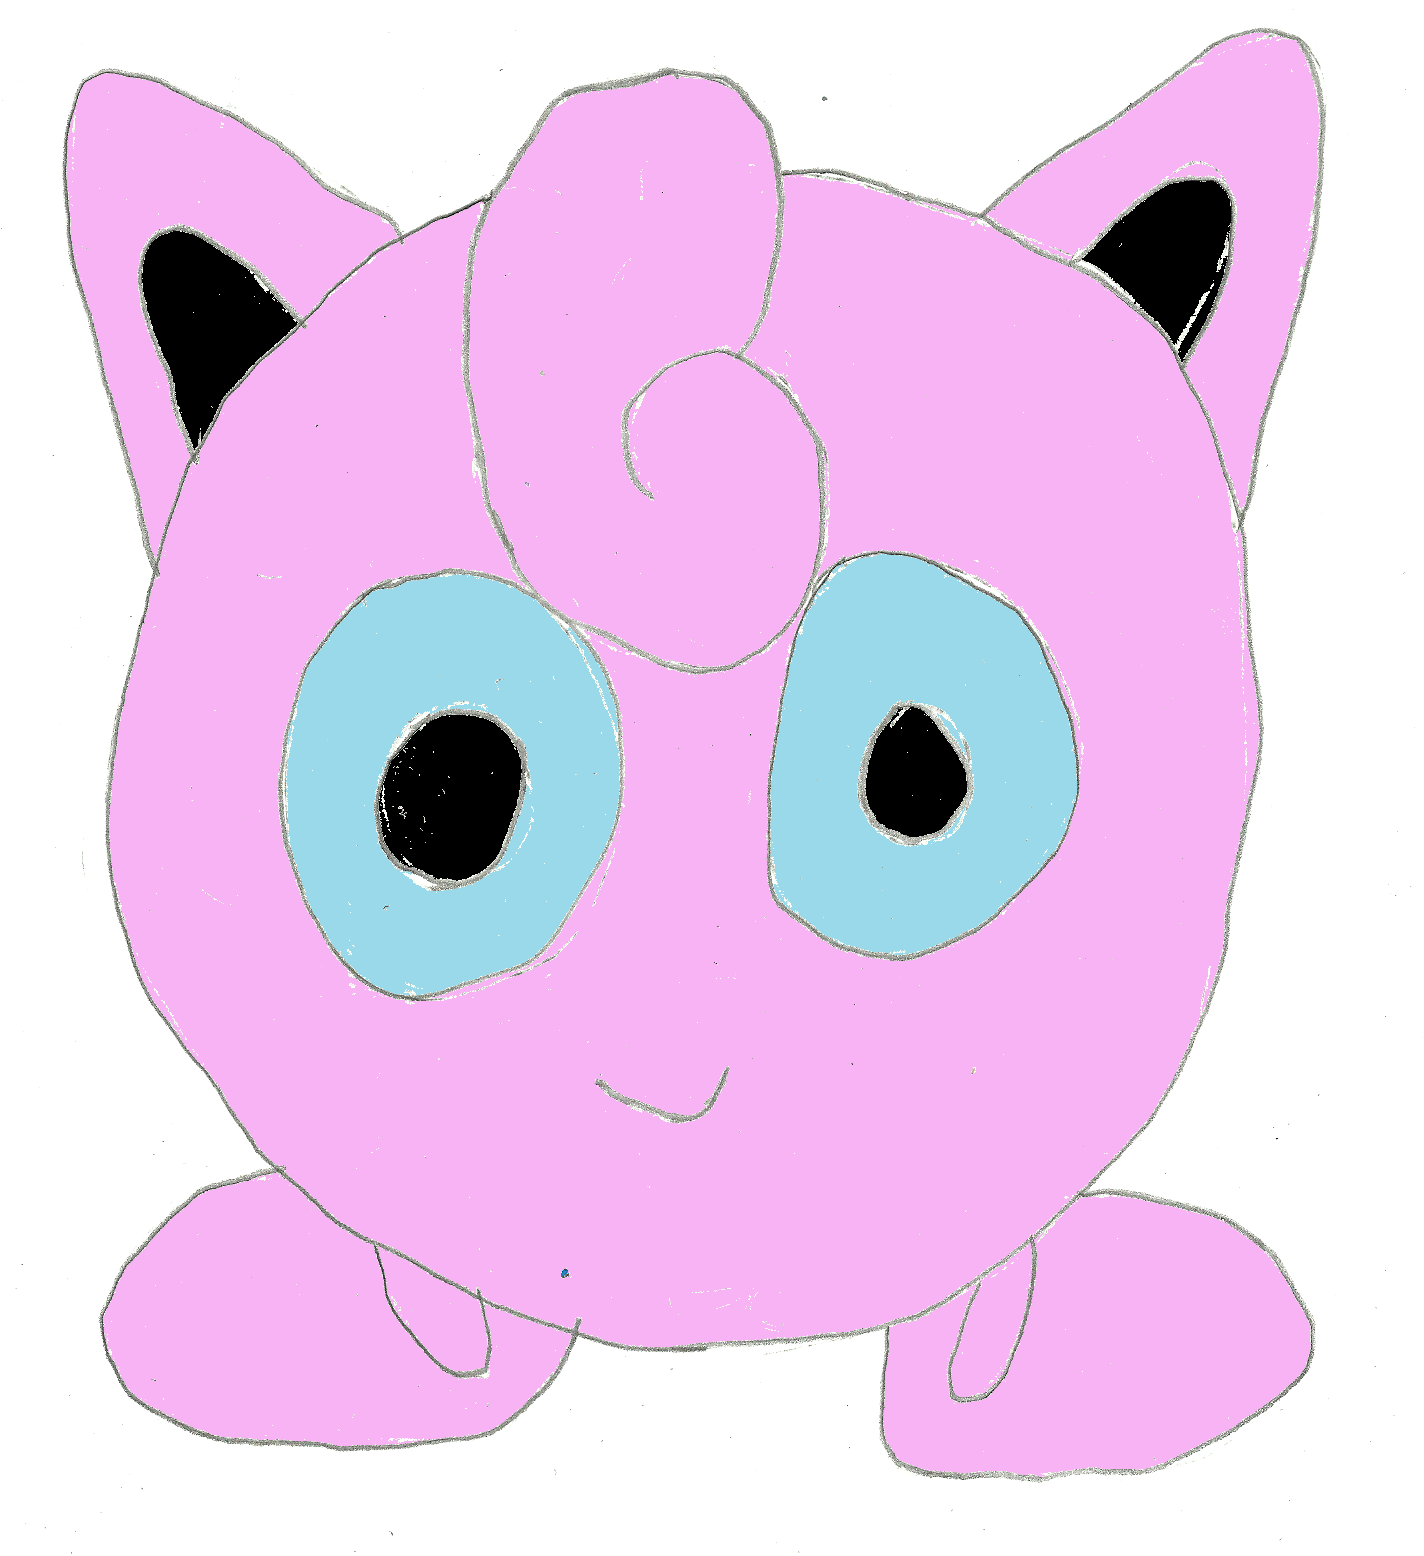 Jigglypuff Images Jiggly Puff Hd Wallpaper And Background Photos